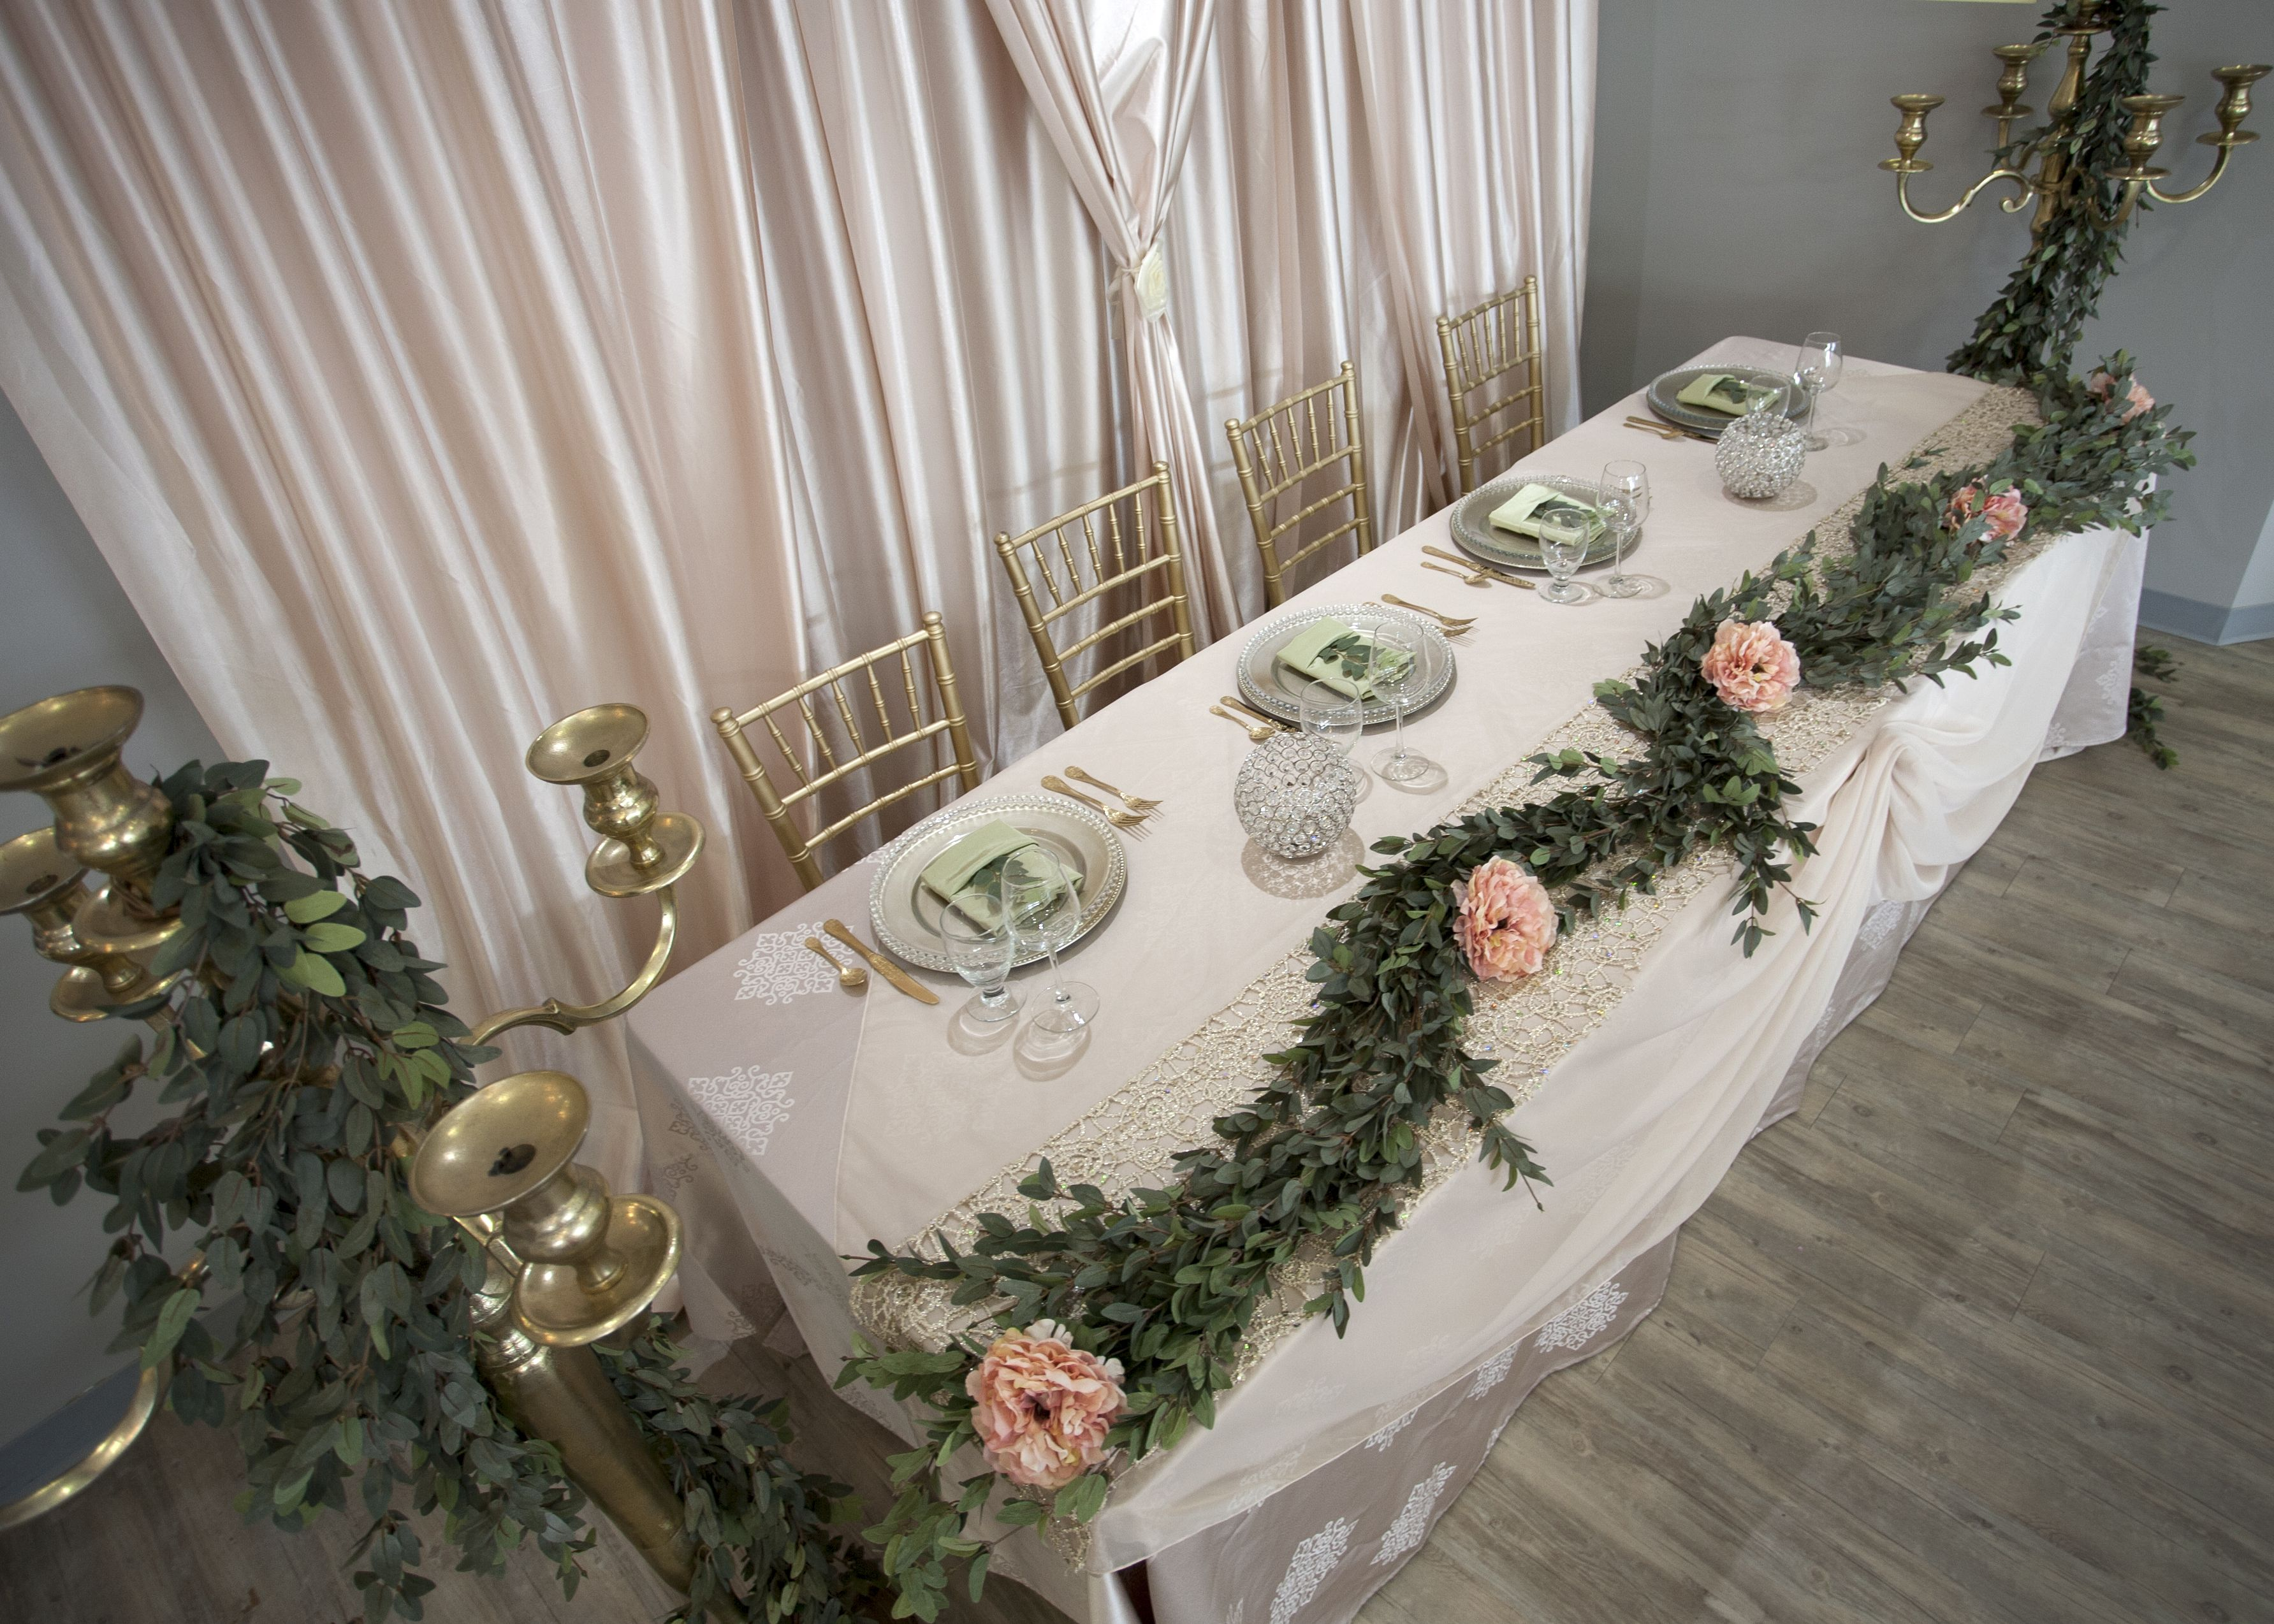 Wedding decorations tulle and lights  Champagne Damask from above  Wedding Head Tables  Pinterest